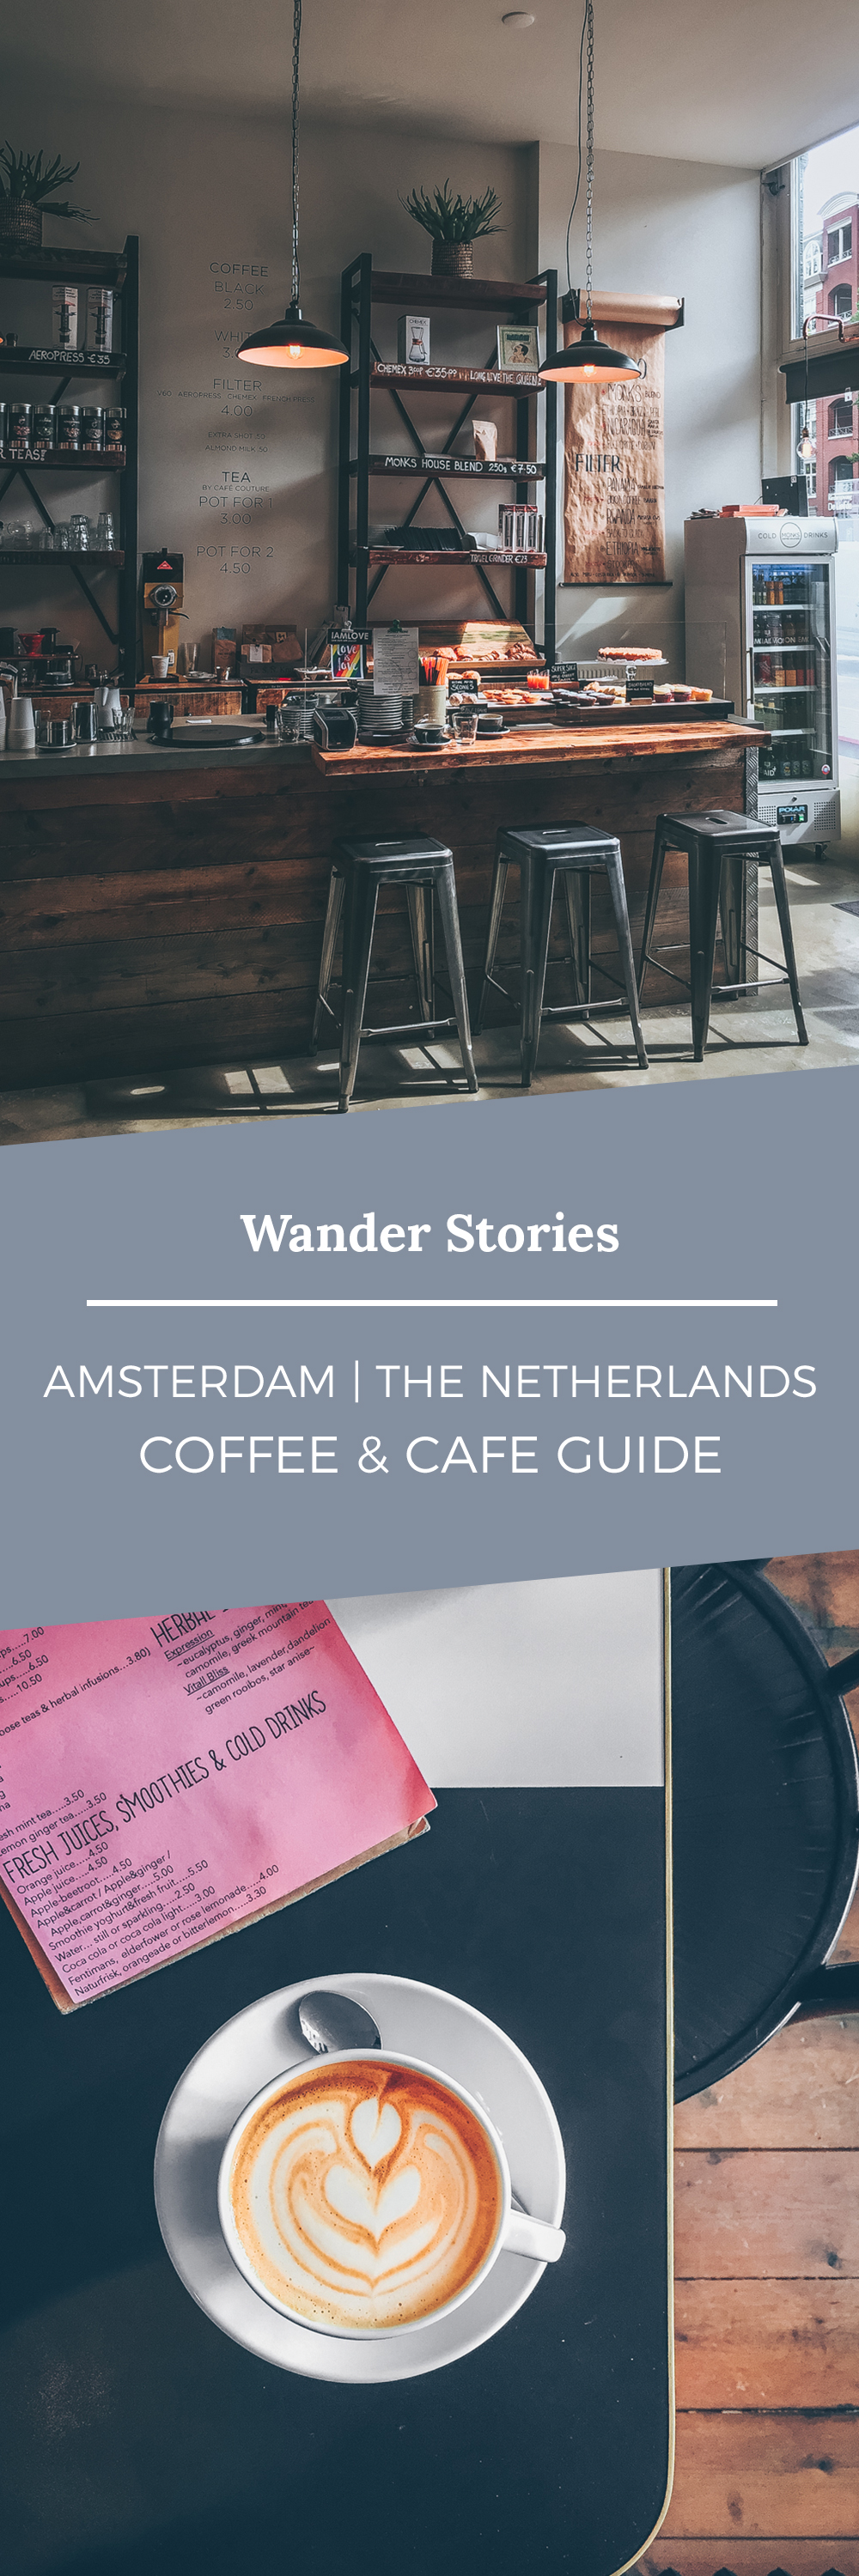 Wander Stories | Amsterdam Coffee Guide - Falling back in love with Amsterdam and (its) coffee by Kati of black.white.vivid. - travel guide, Amsterdam coffee guide, Amsterdam best coffee spots, Amsterdam food guide, Amsterdam restaurants, Amsterdam Cafes, Amsterdam Coffee Shop, travel photography, city photography, matte photography